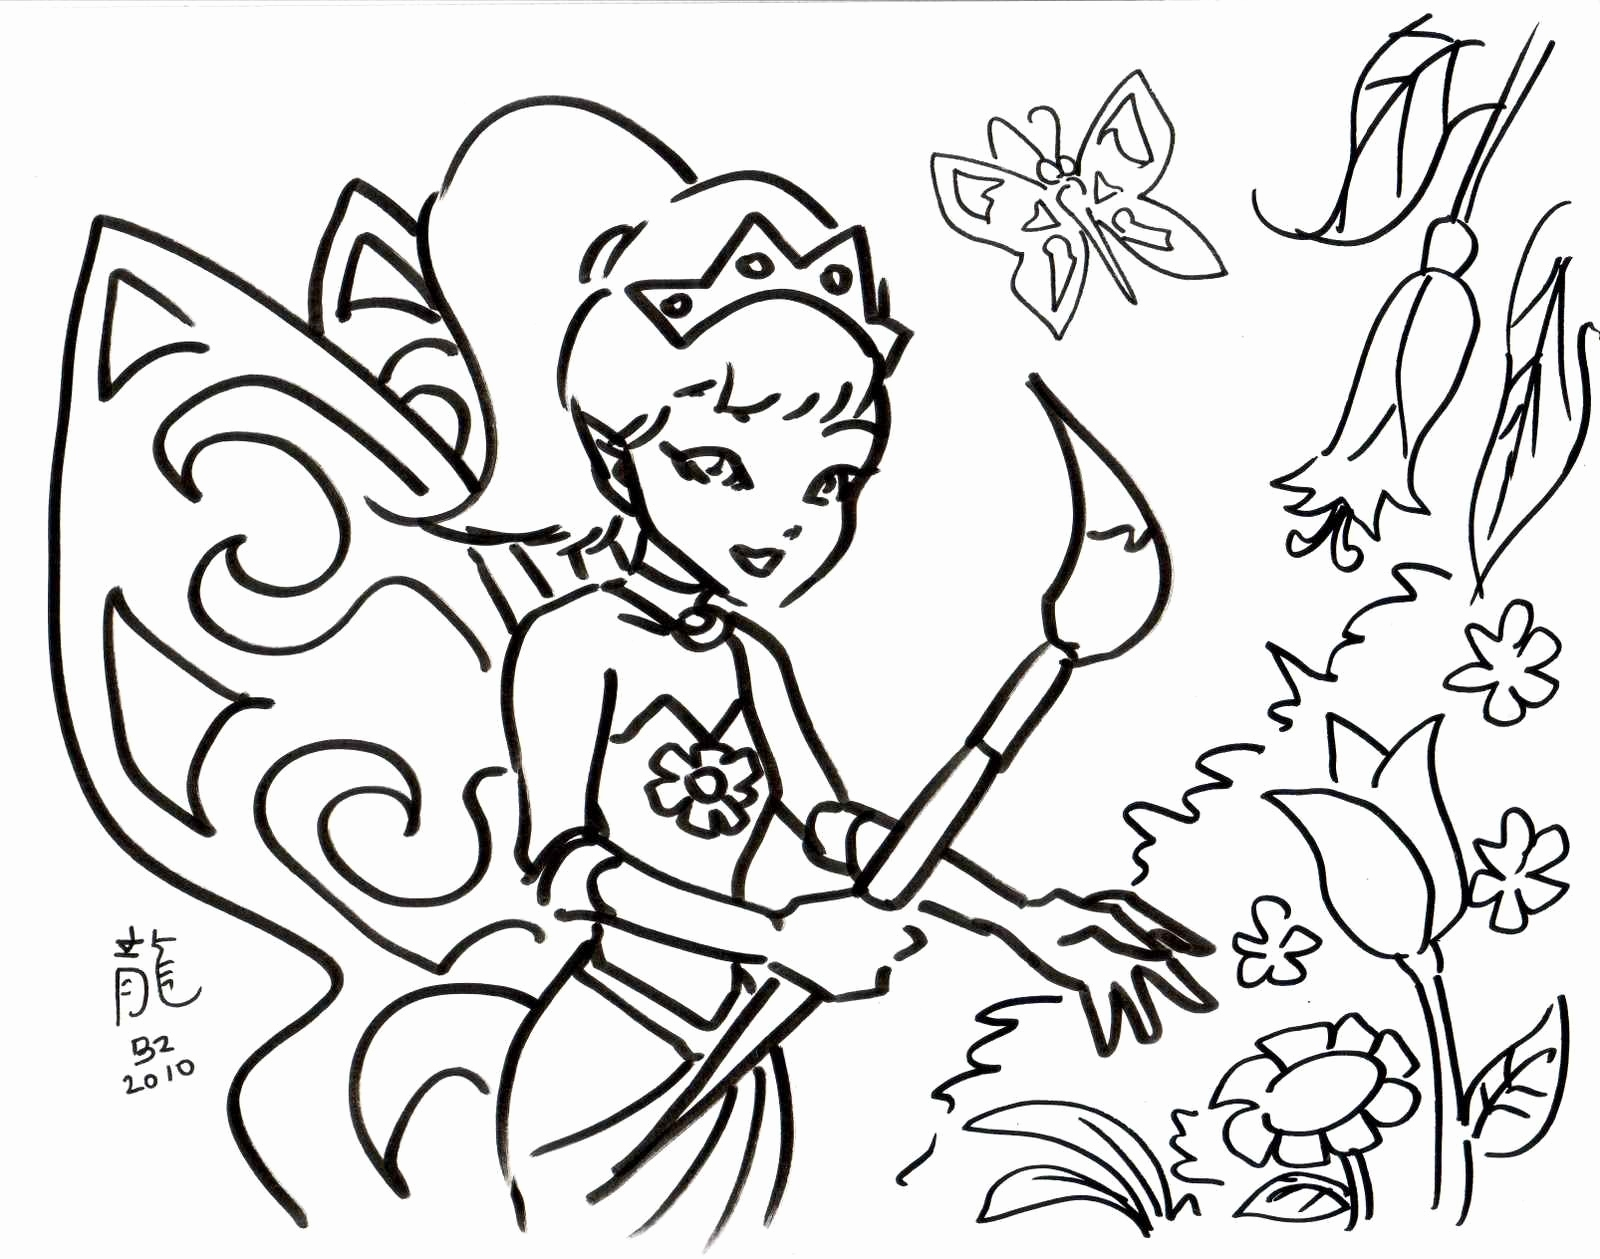 Dry Bones Coloring Pages at GetDrawings | Free download